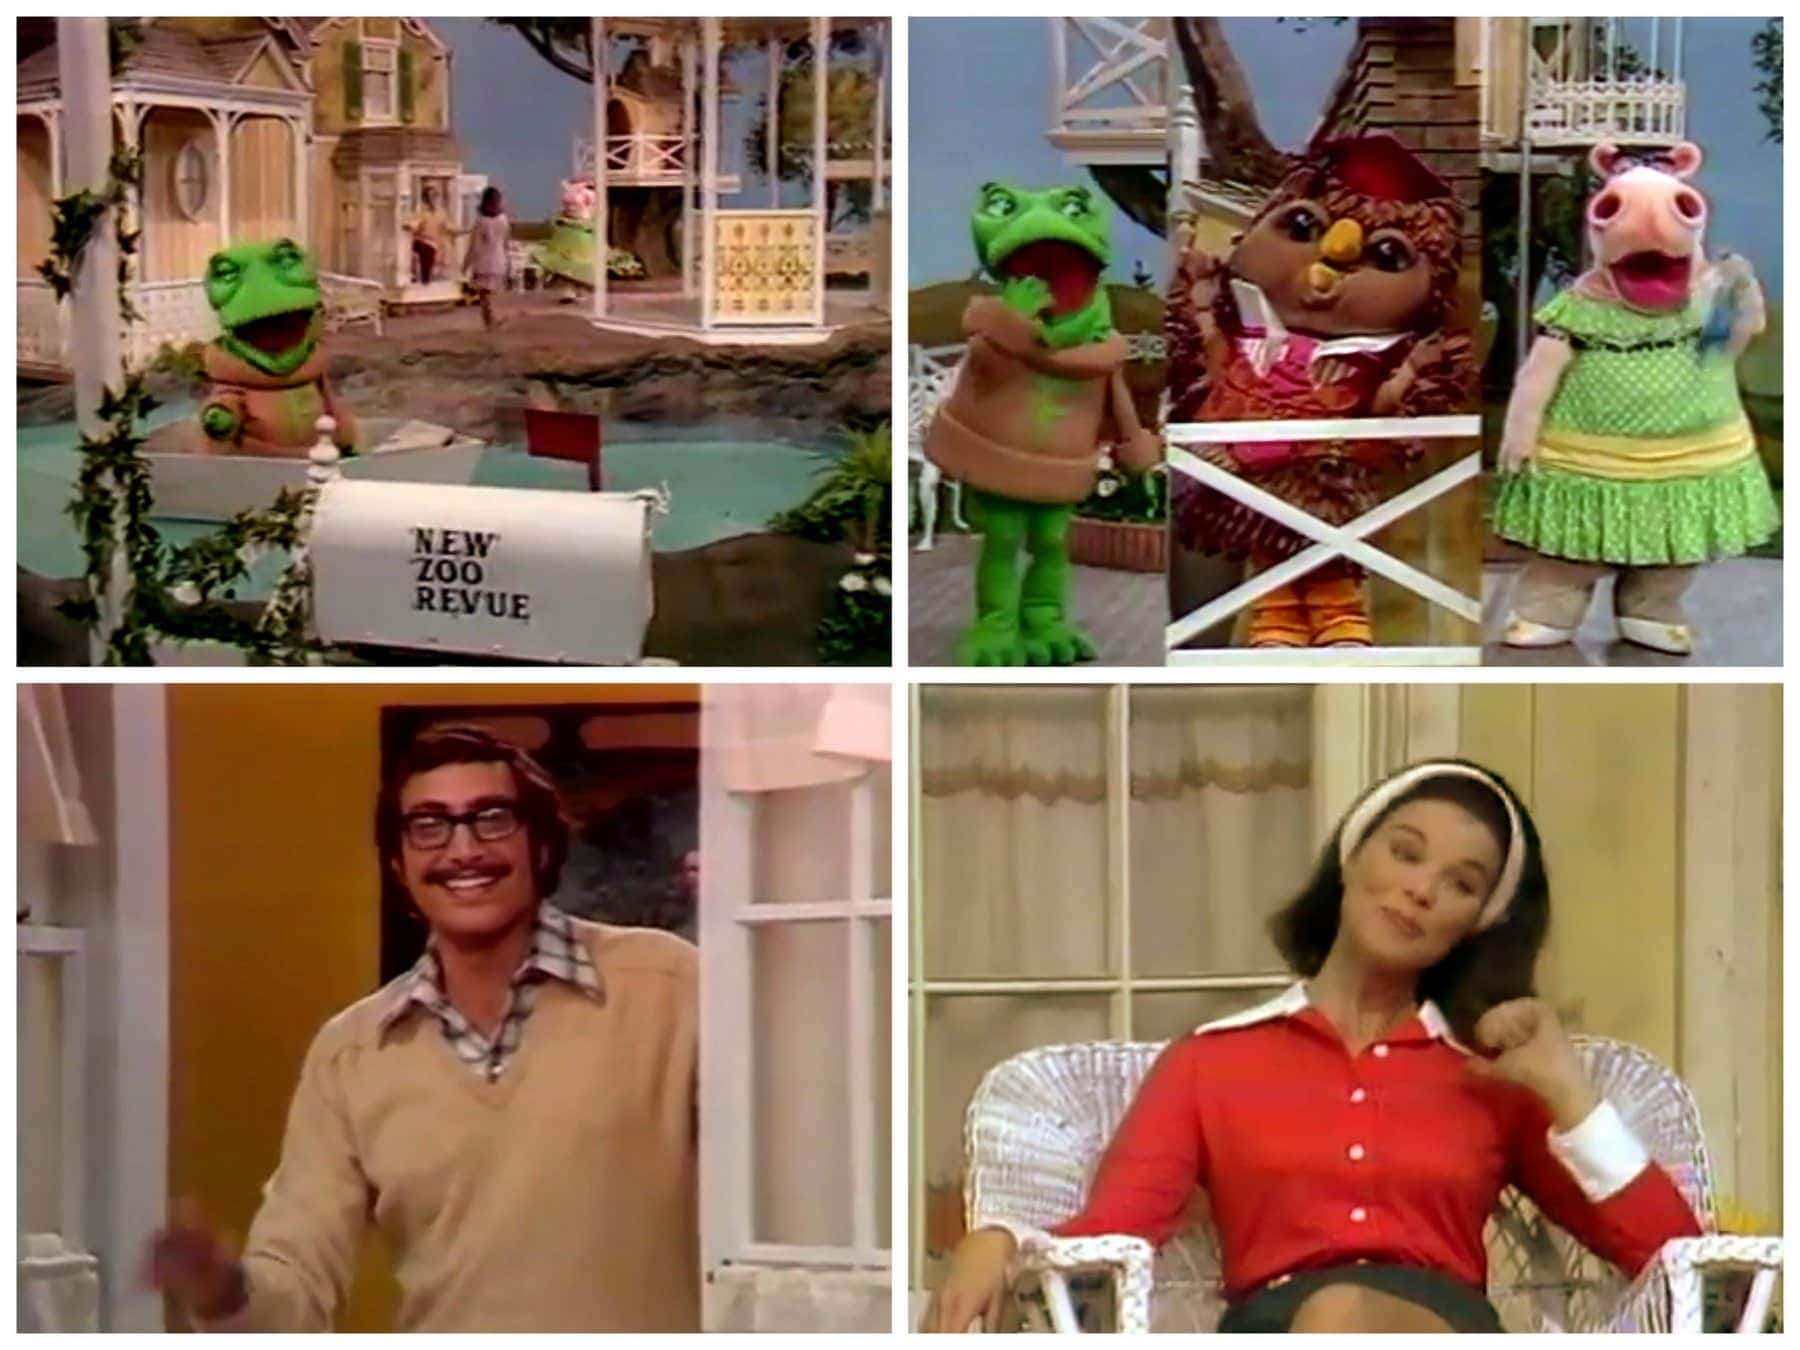 New Zoo Revue Tv show from the 70s (2)